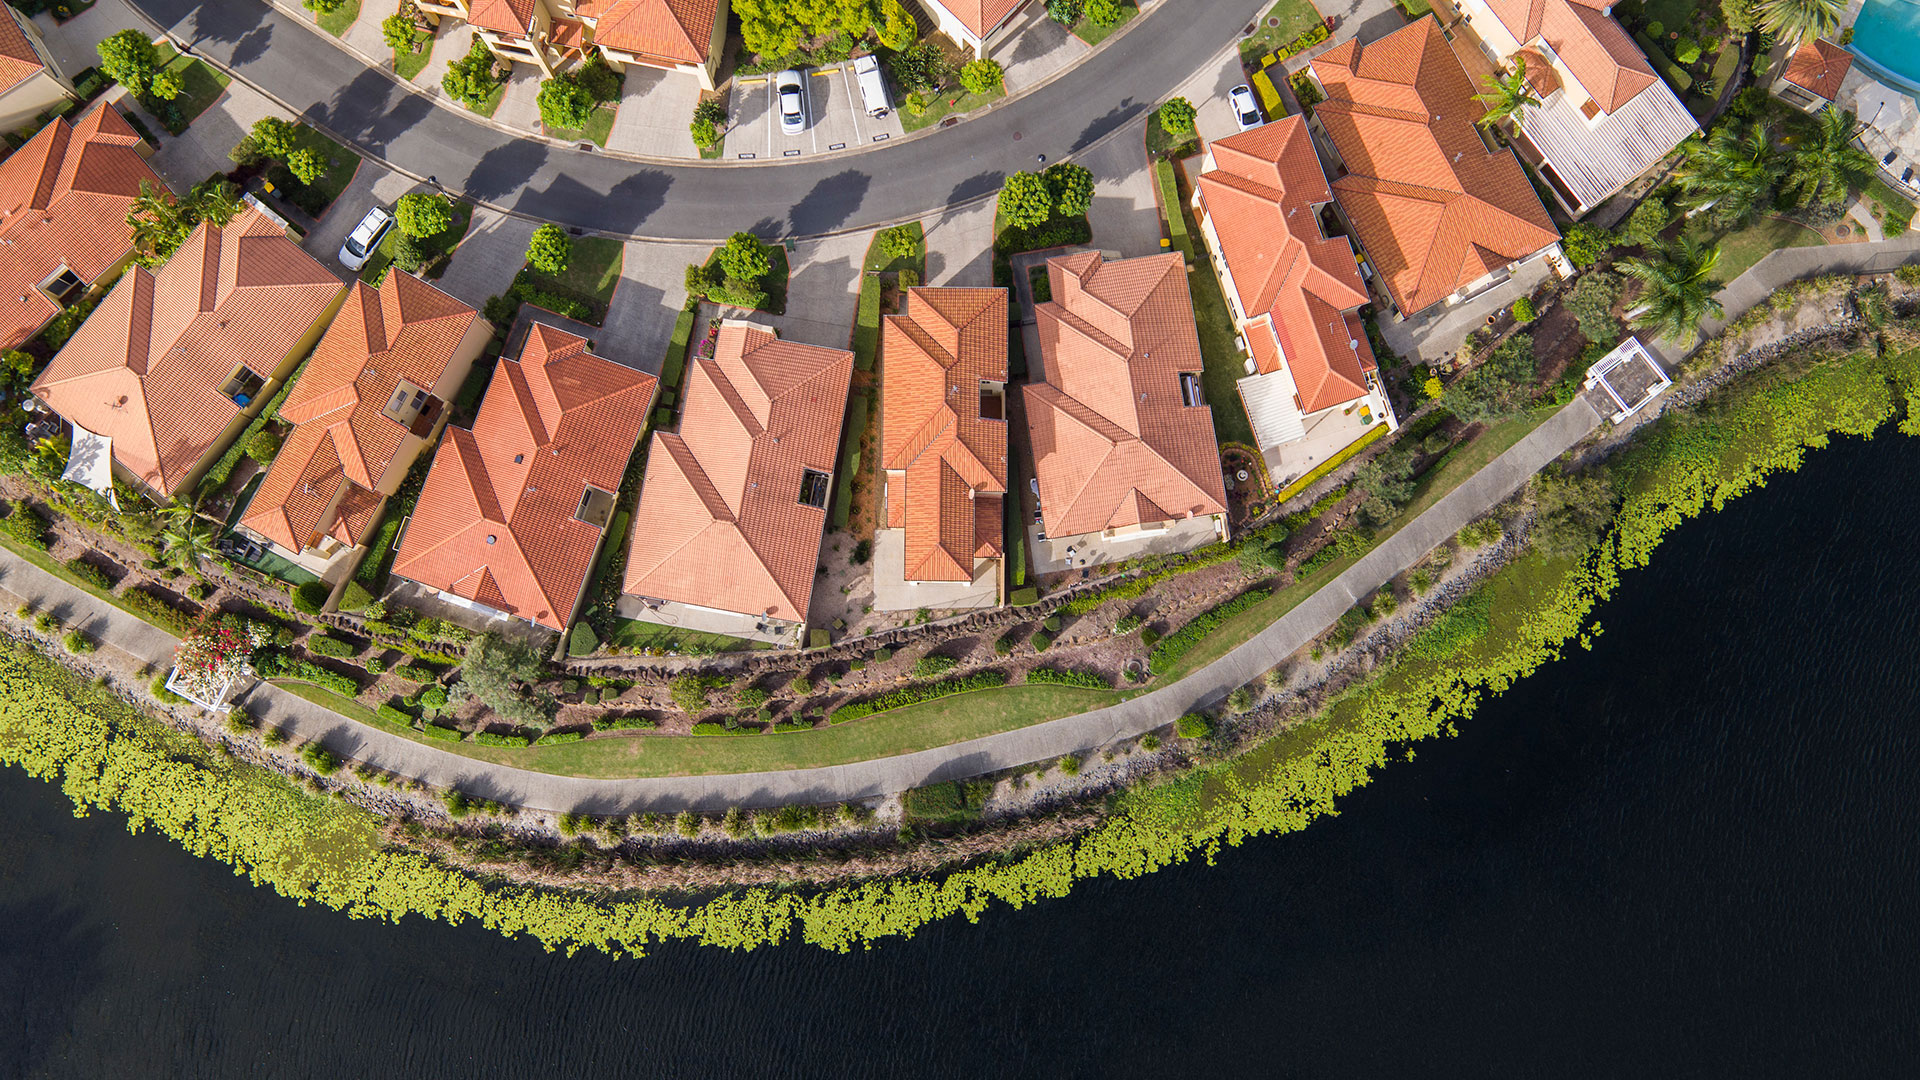 Aerial drone photography for real estate sales at Robina. © FLYFILM